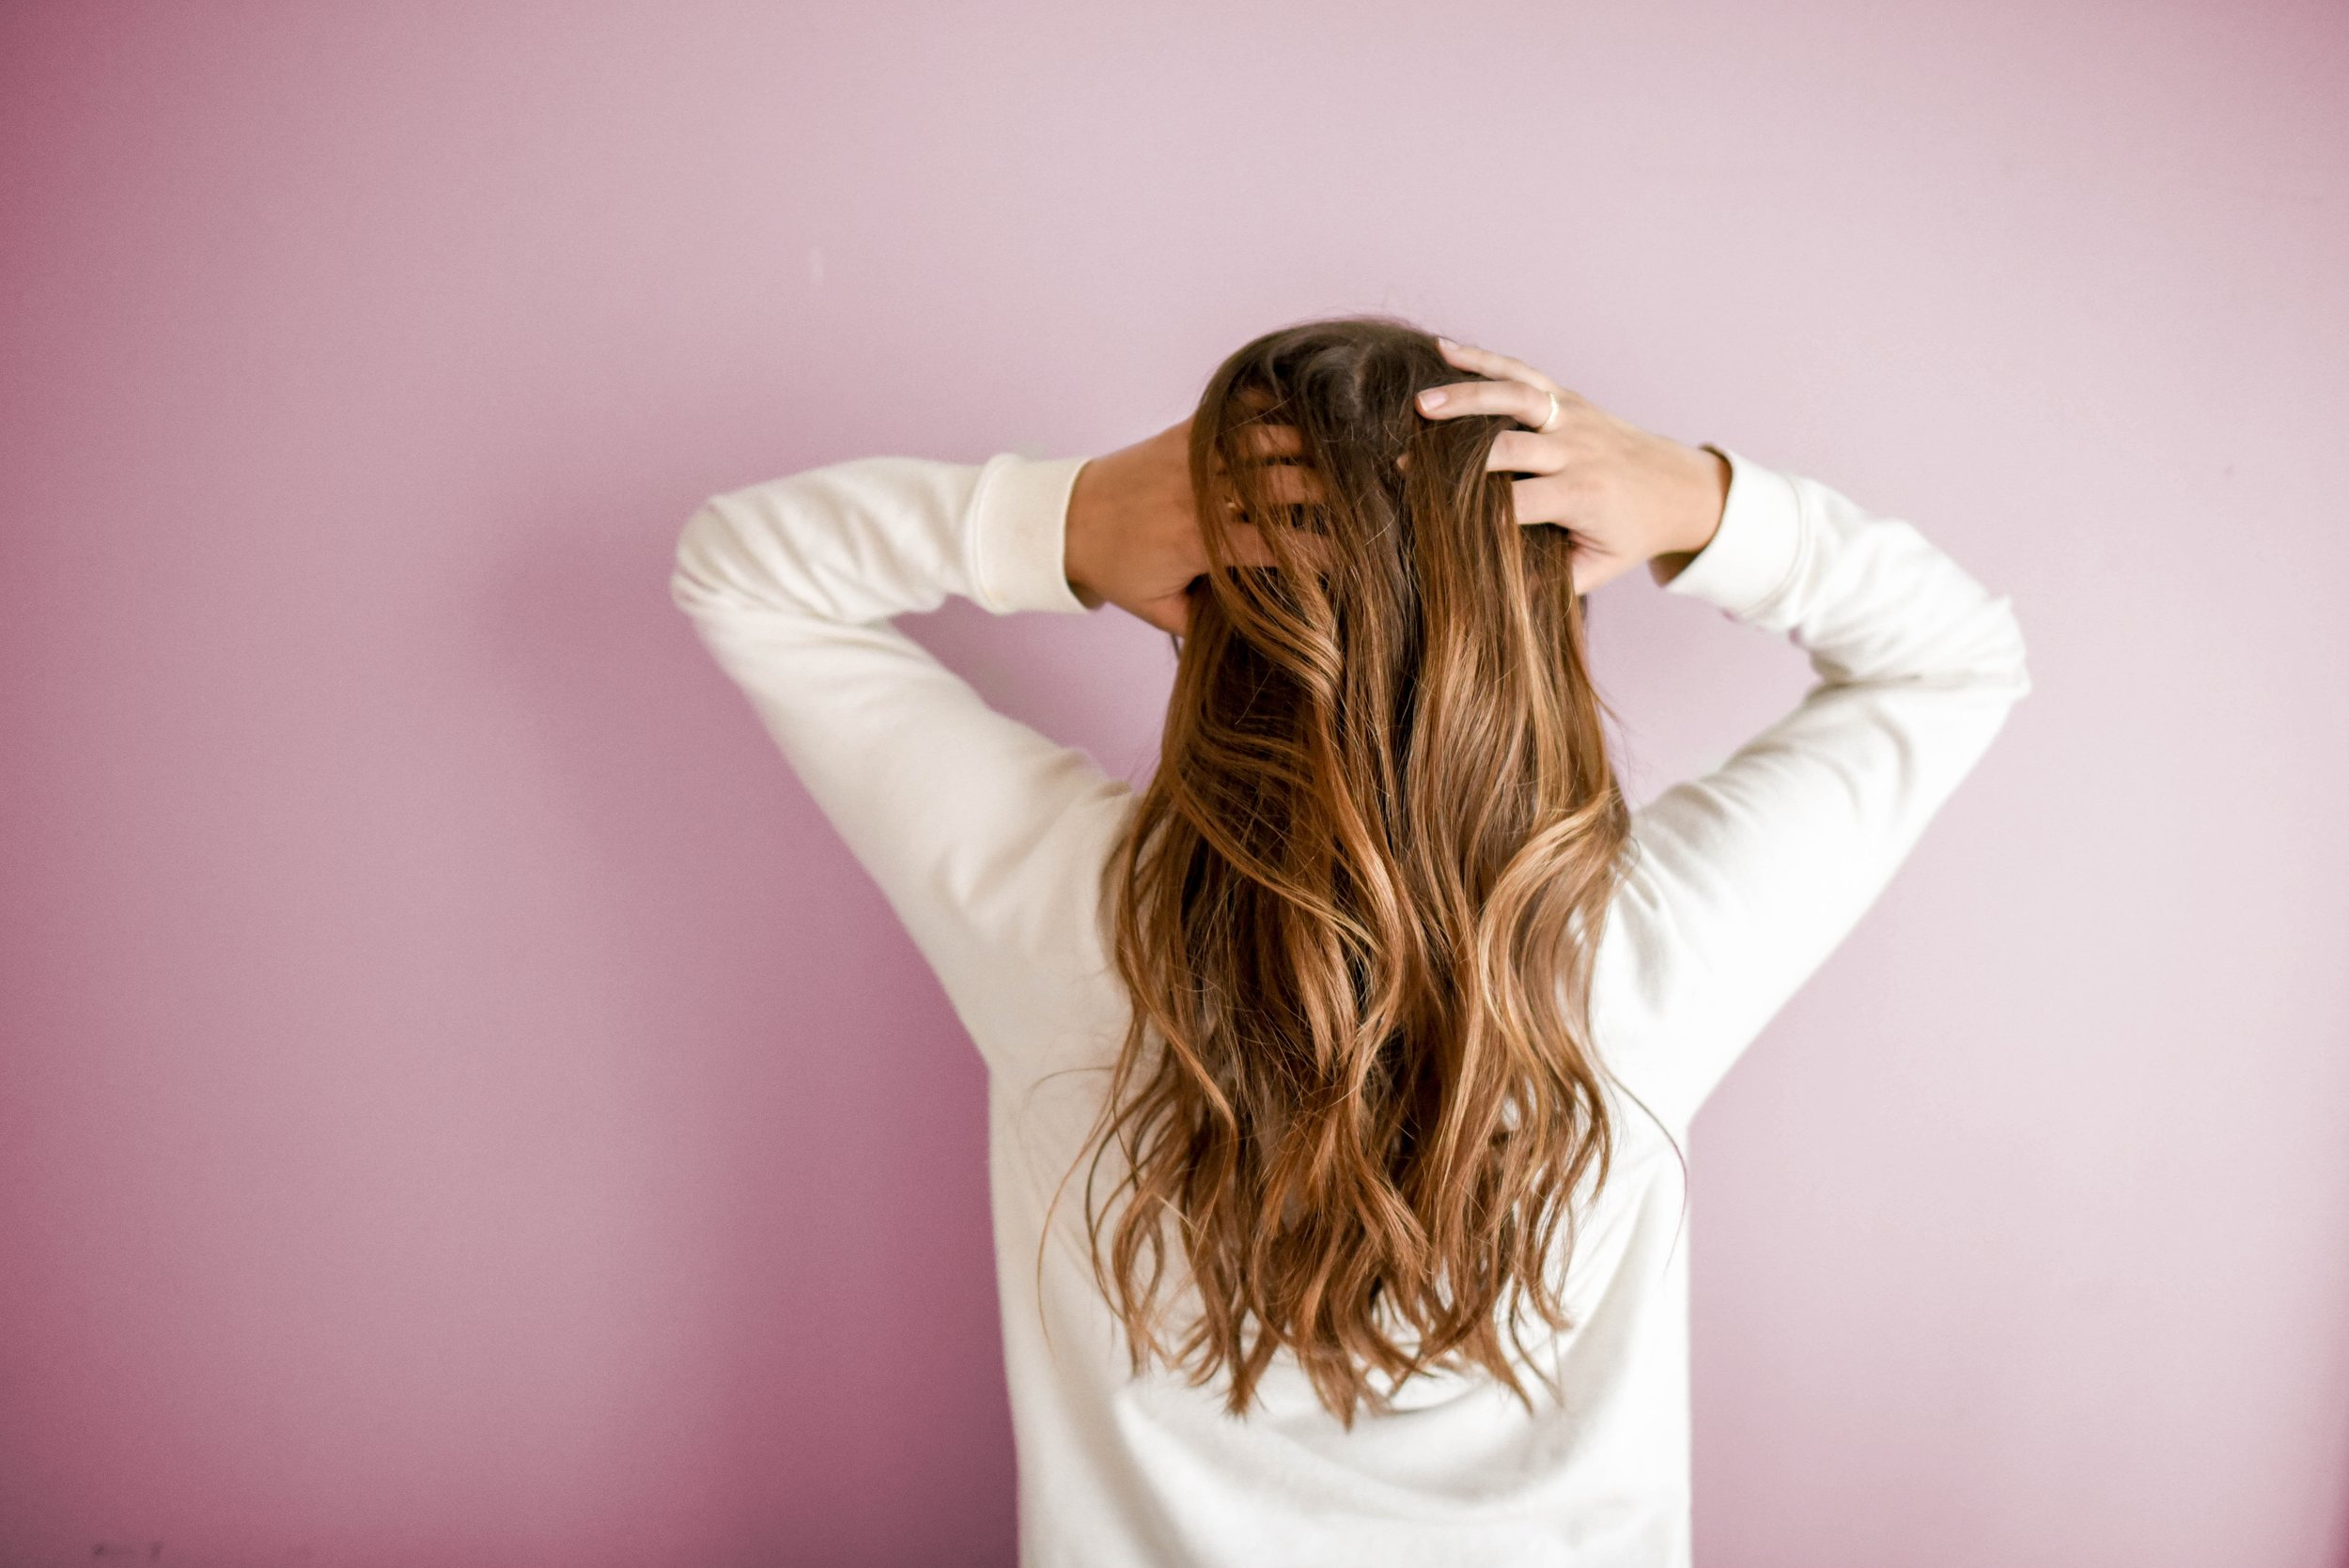 Growing Out My Roots - change your hair, change your life. Read more from Holl & Lane at hollandlanemag.com